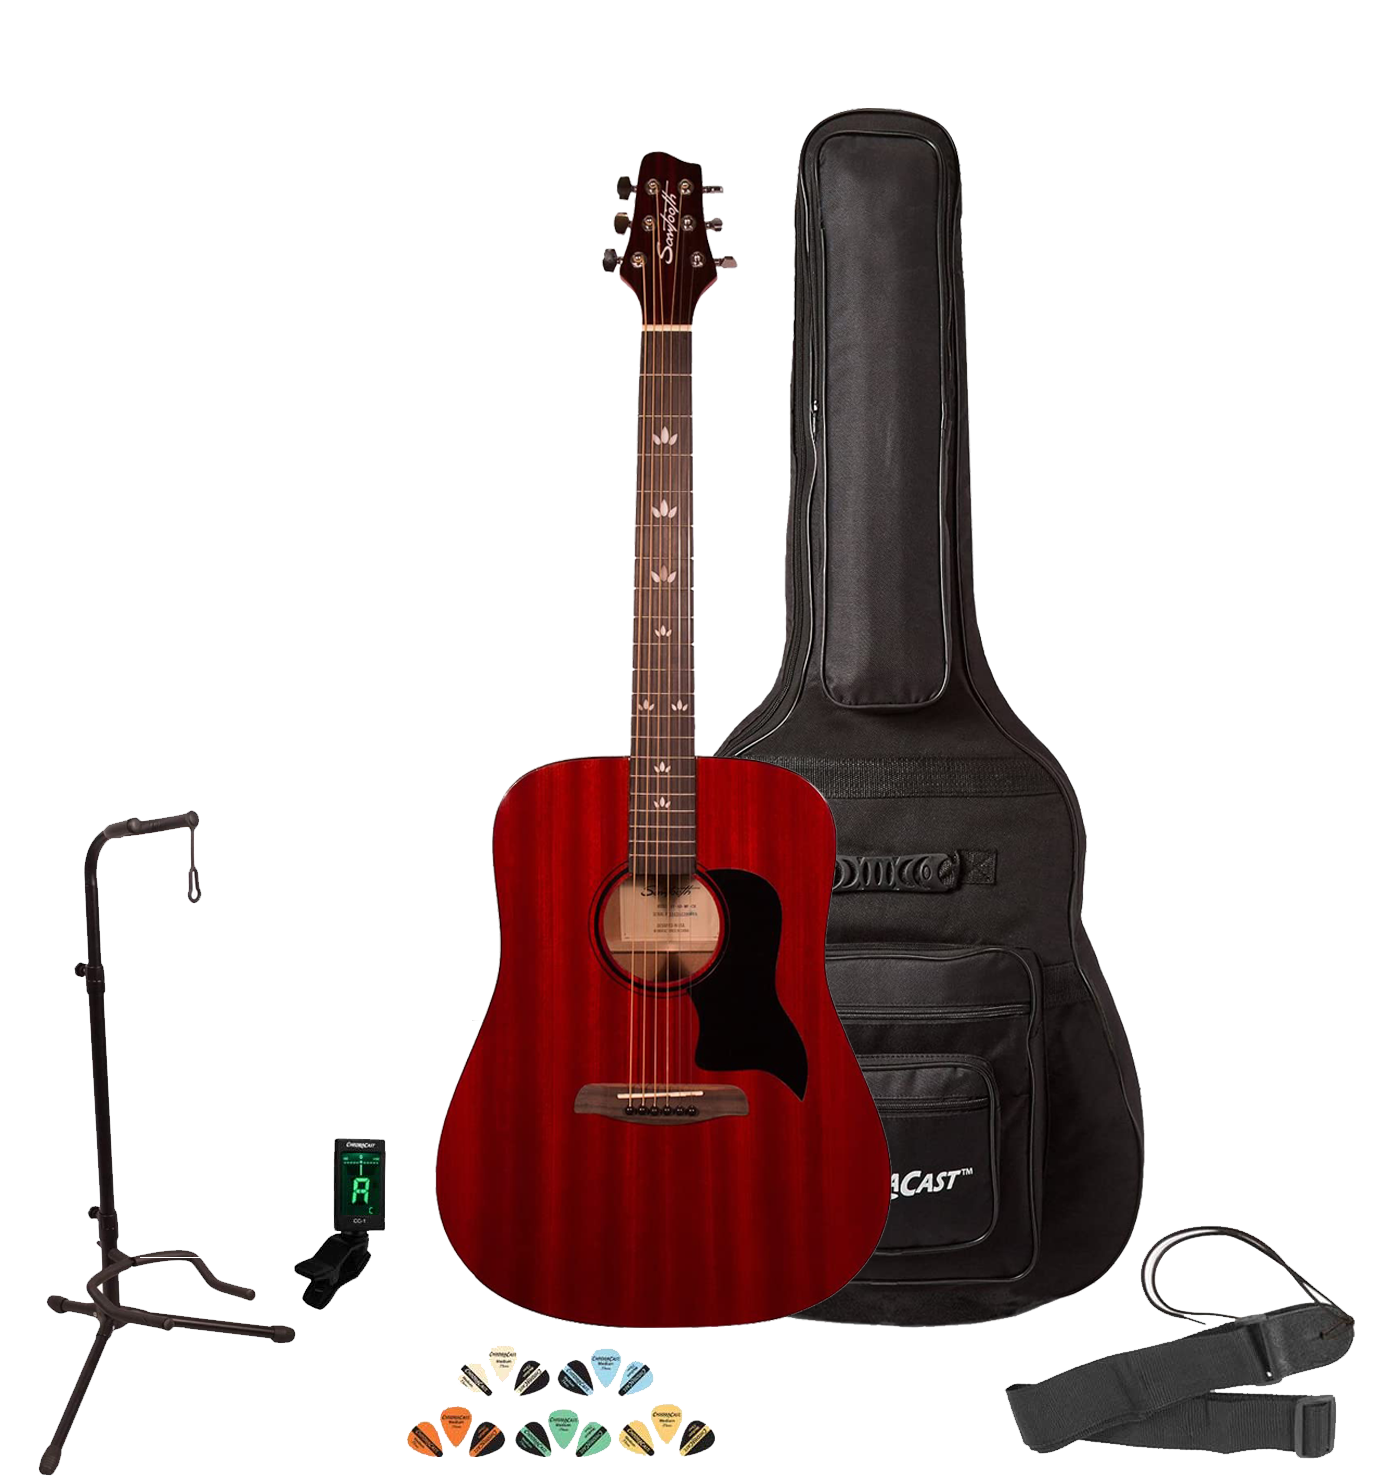 Sawtooth Modern Vintage Acoustic Guitar Players Pack, With Tuner, Picks, Stand & Strap, Cherry Mahog